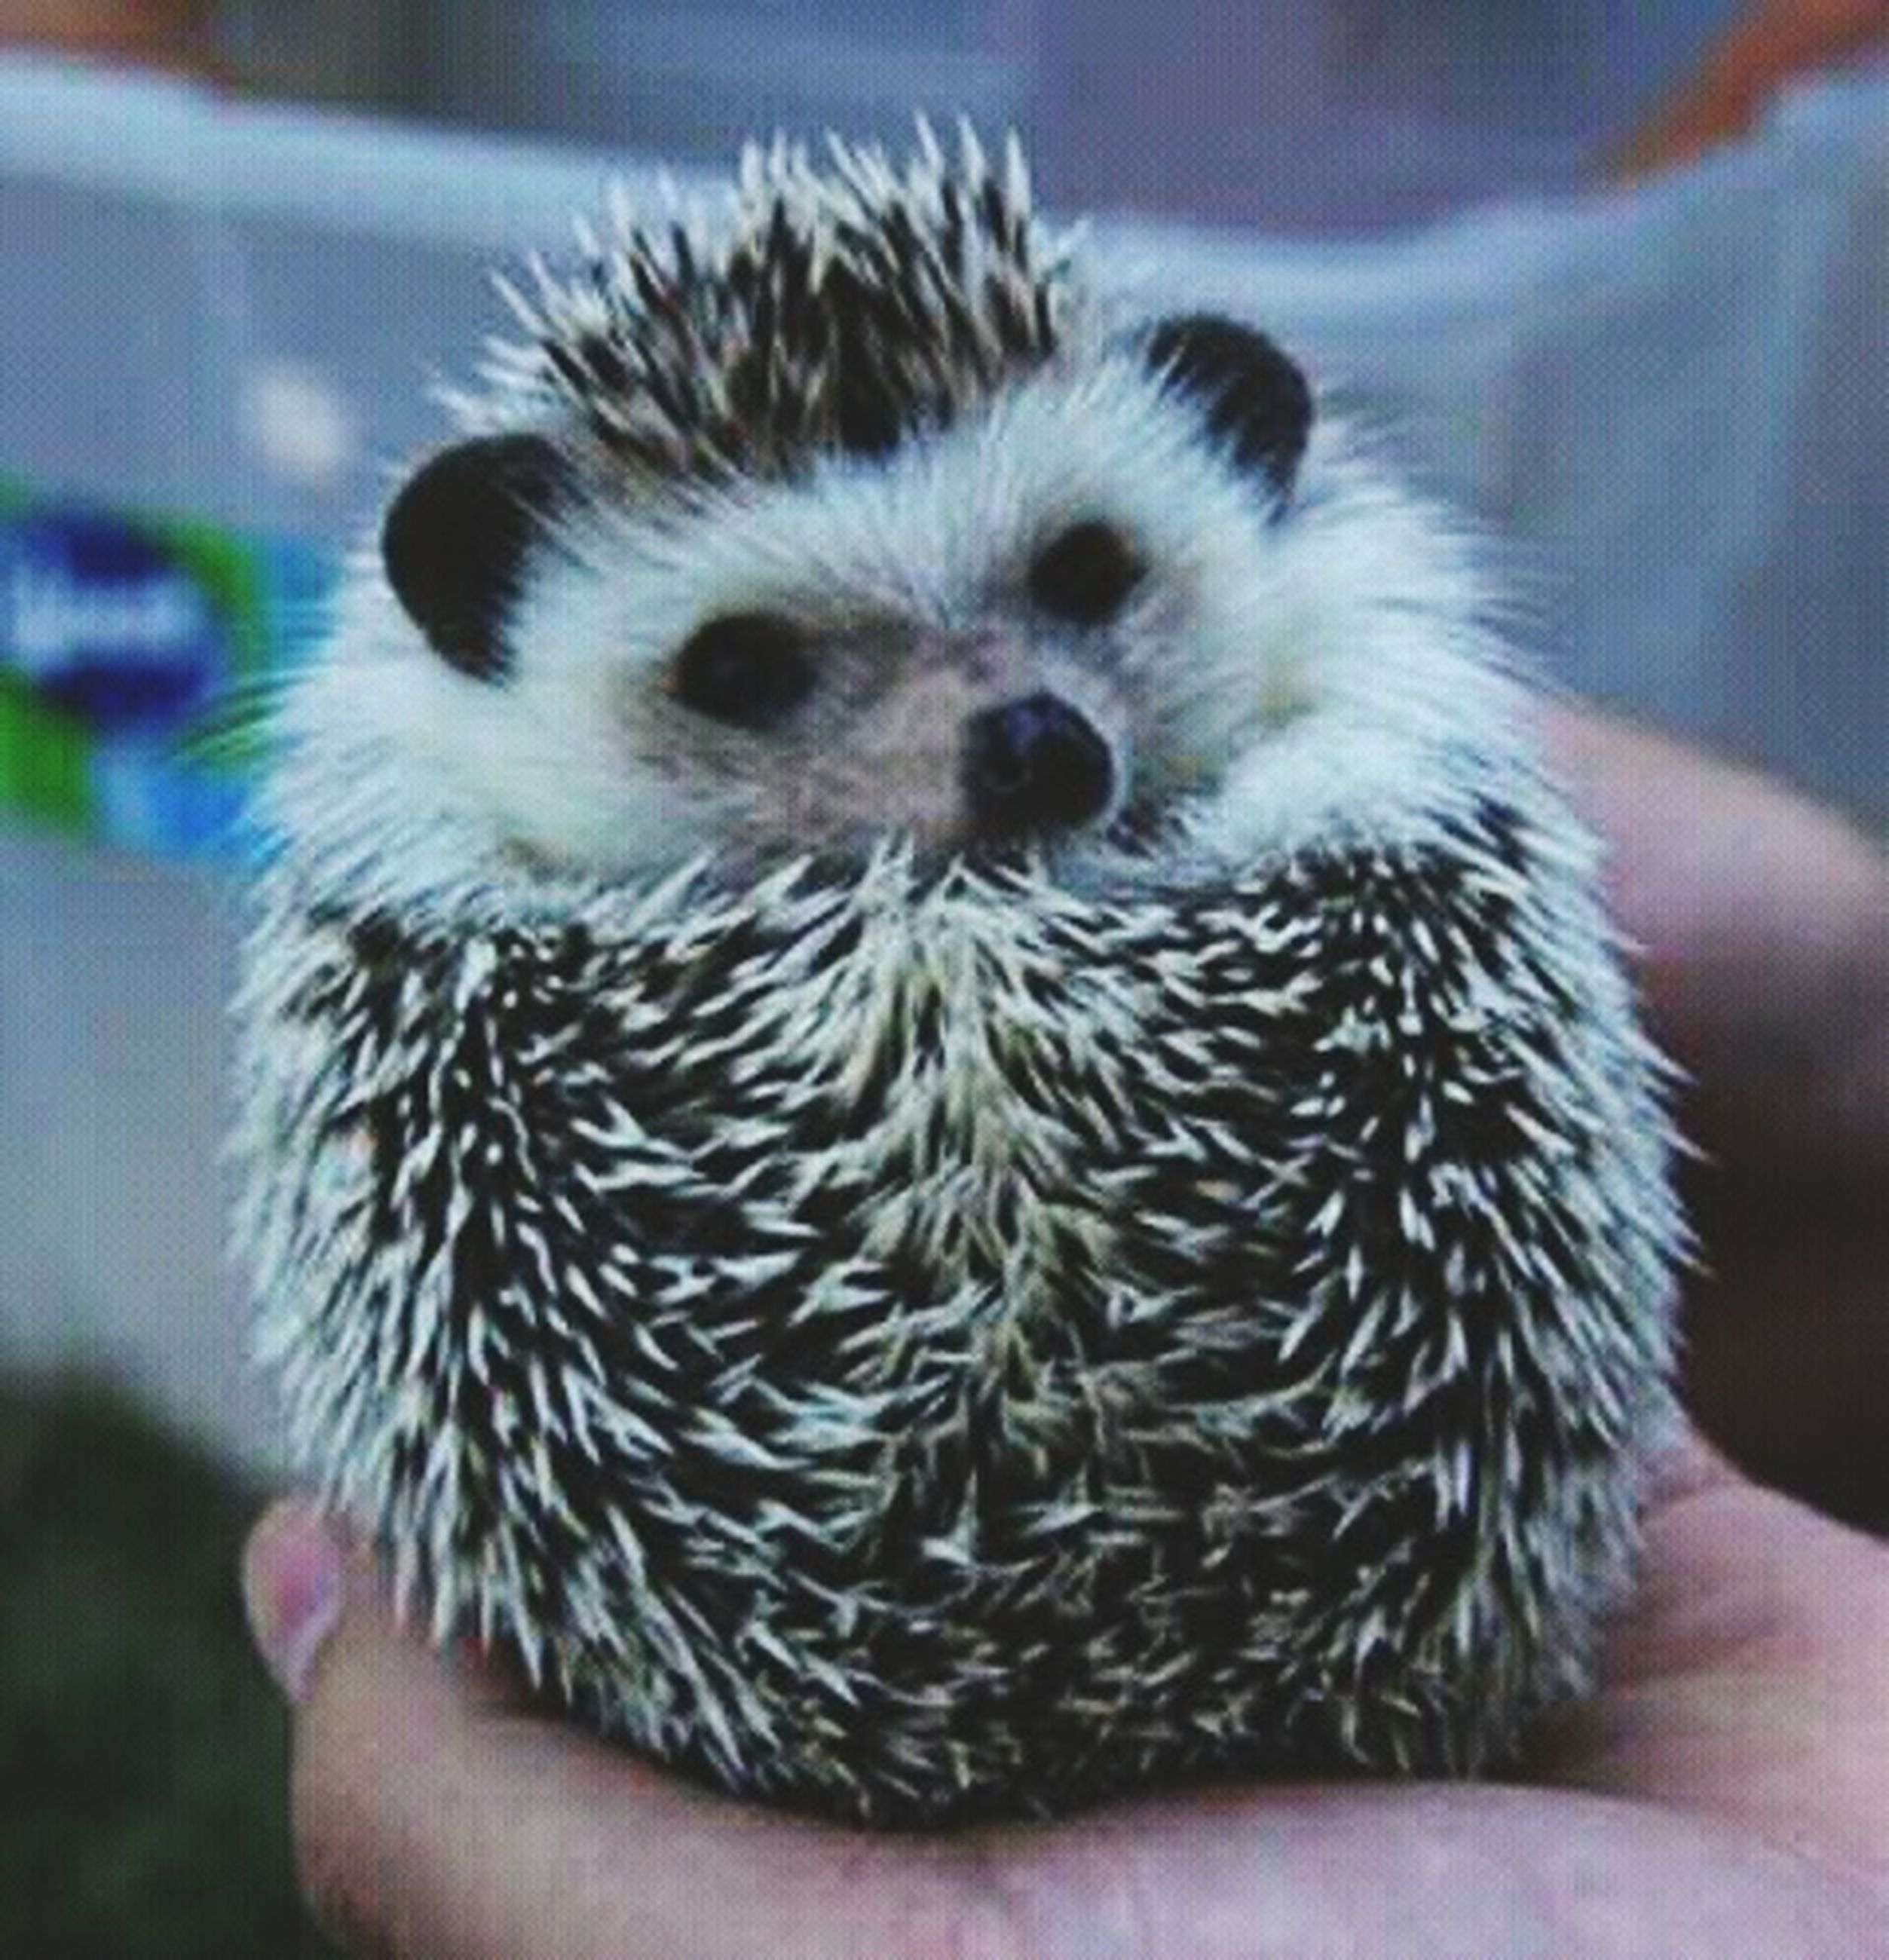 real people, human hand, animal themes, holding, focus on foreground, one animal, unrecognizable person, one person, close-up, indoors, home interior, human body part, hedgehog, nature, animals in the wild, day, mammal